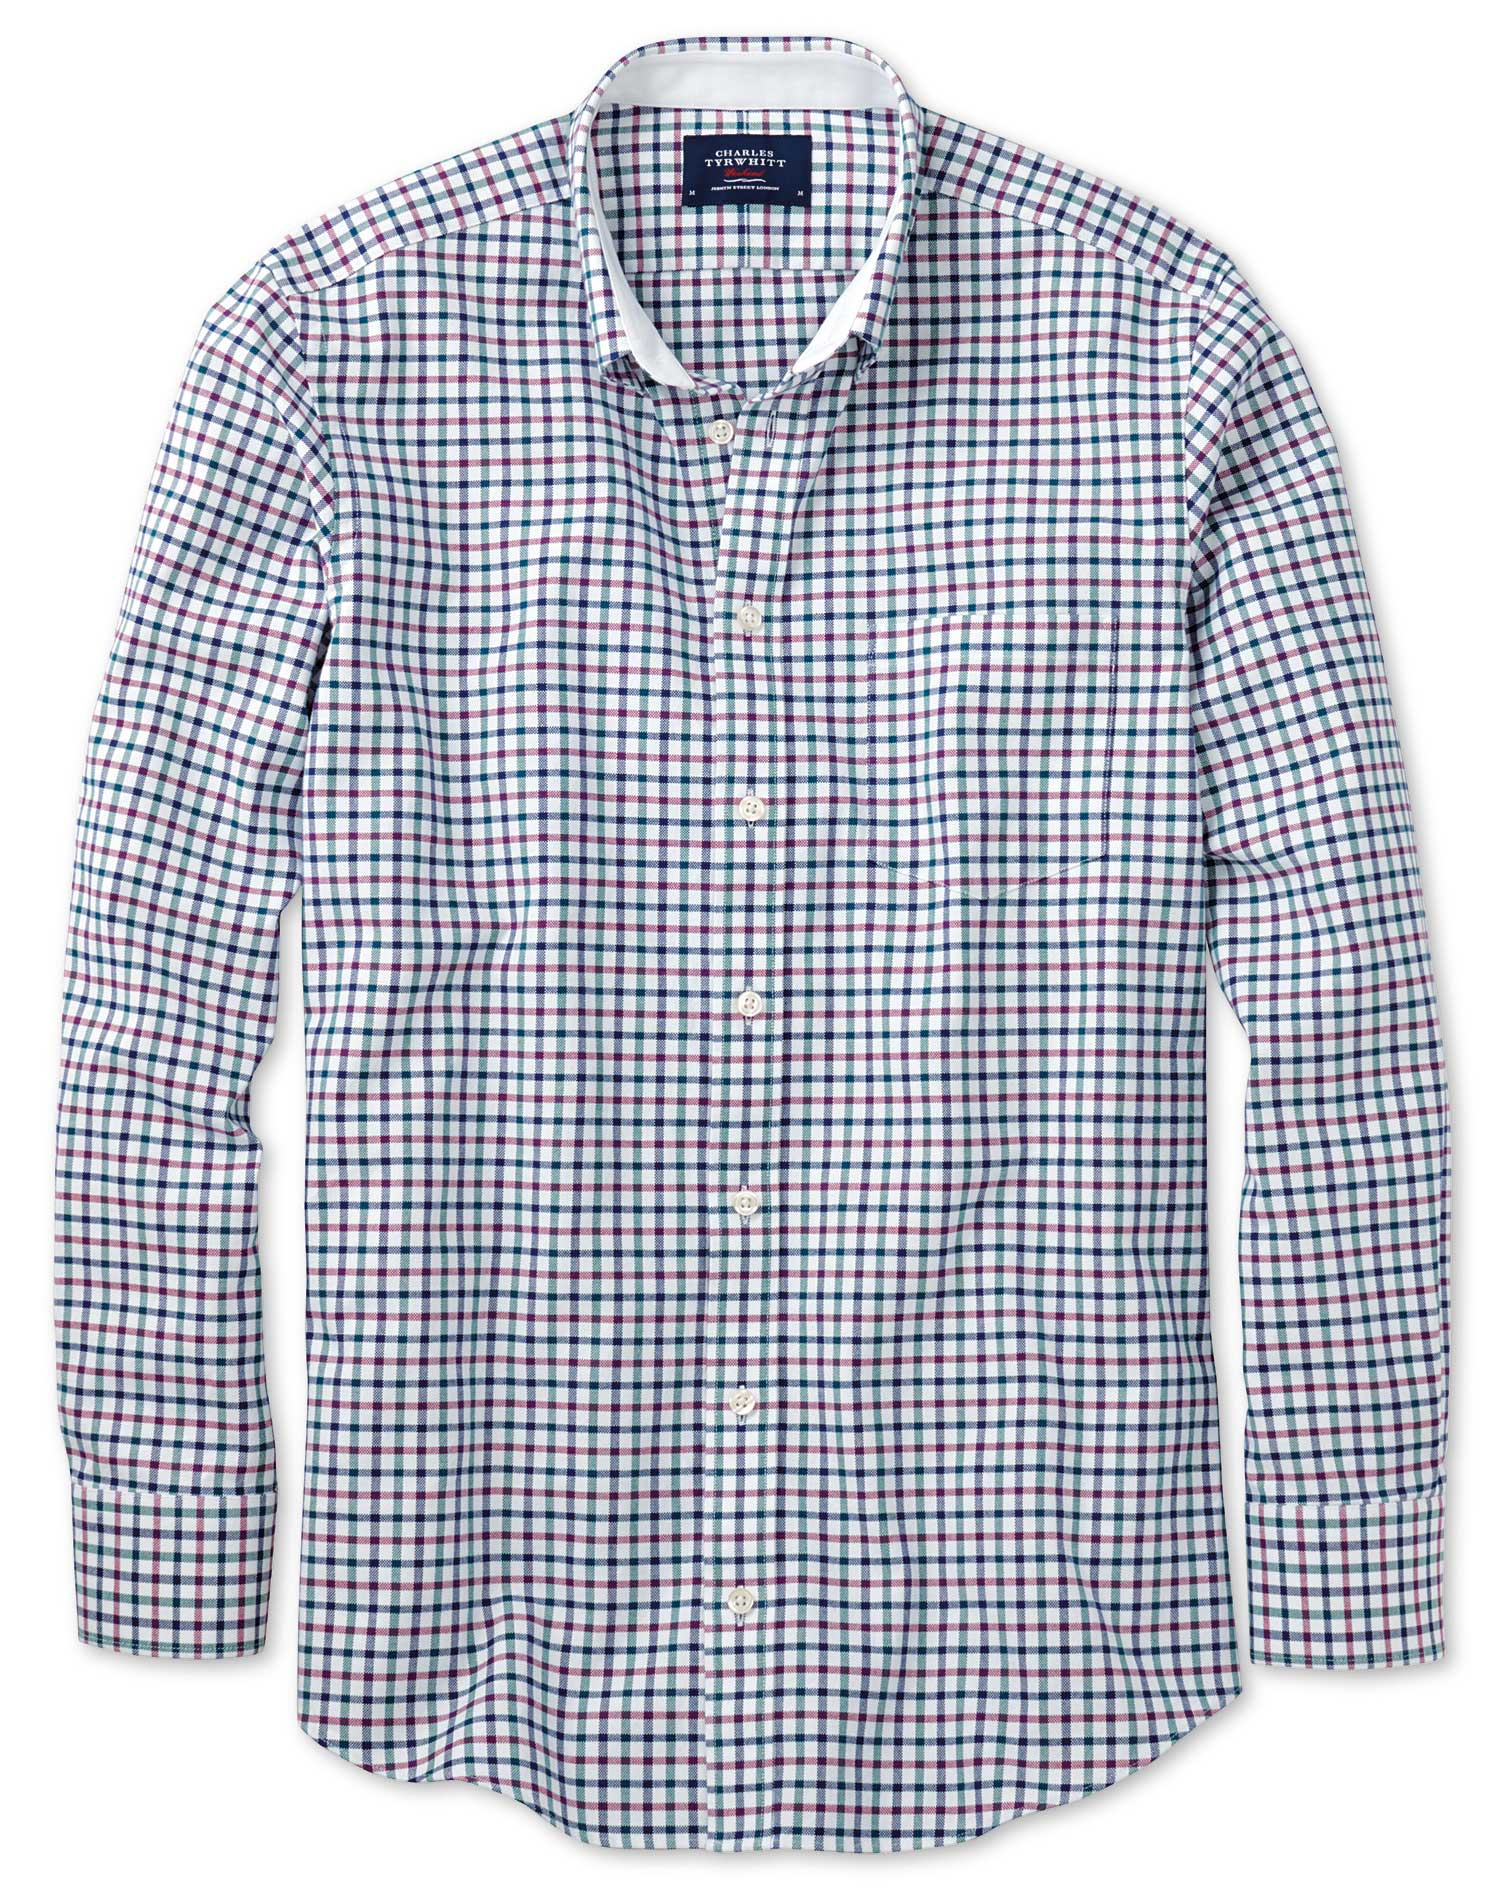 Slim Fit Navy and Berry Check Washed Oxford Cotton Shirt Single Cuff Size XS by Charles Tyrwhitt